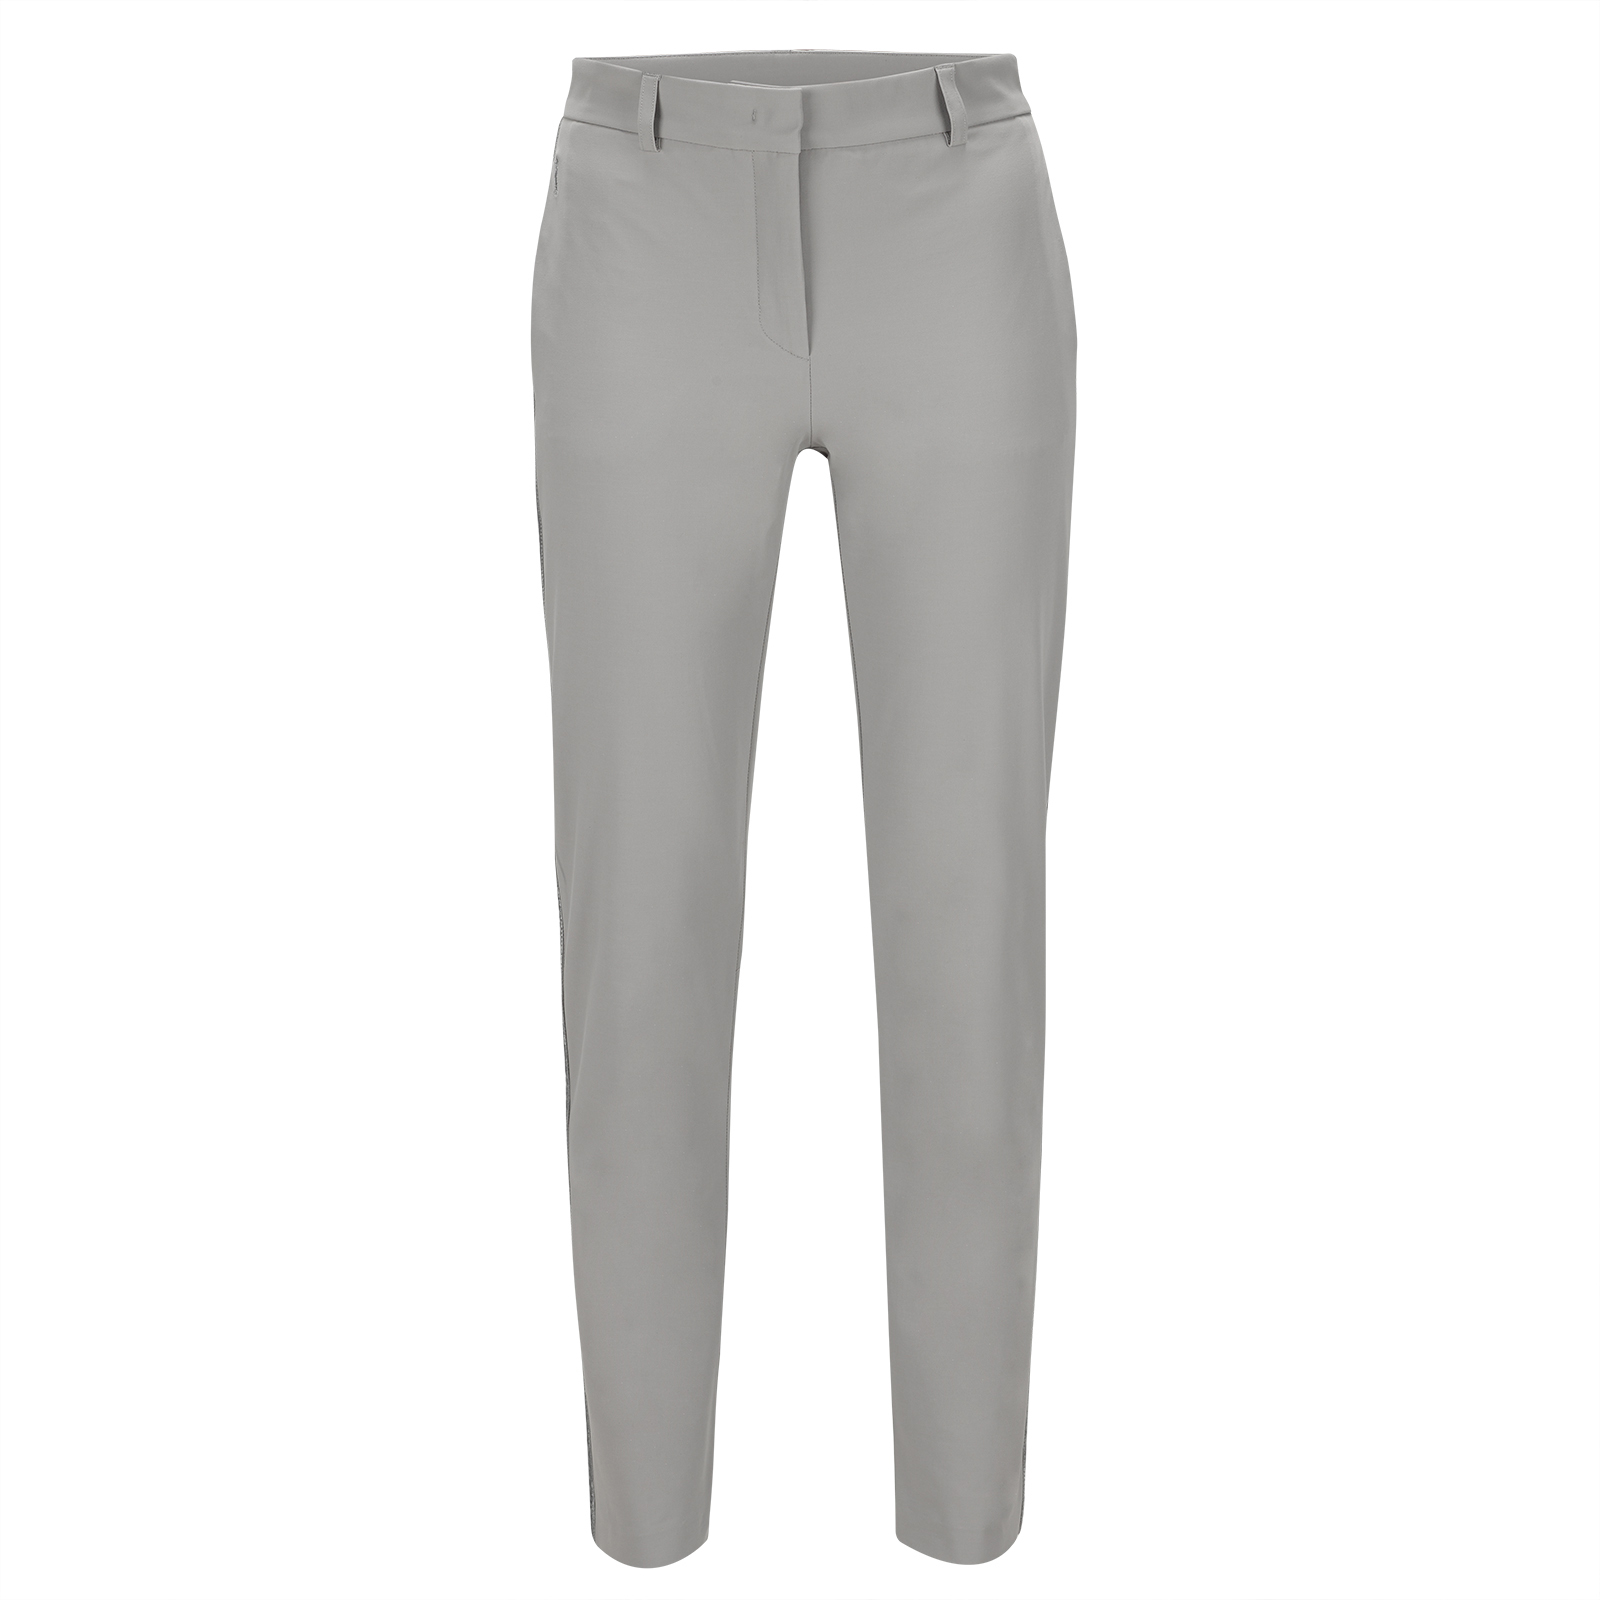 Techno Stretch 7/8 Damen Golfhose in Slim Fit aus hautfreundlichem Cotton Blend